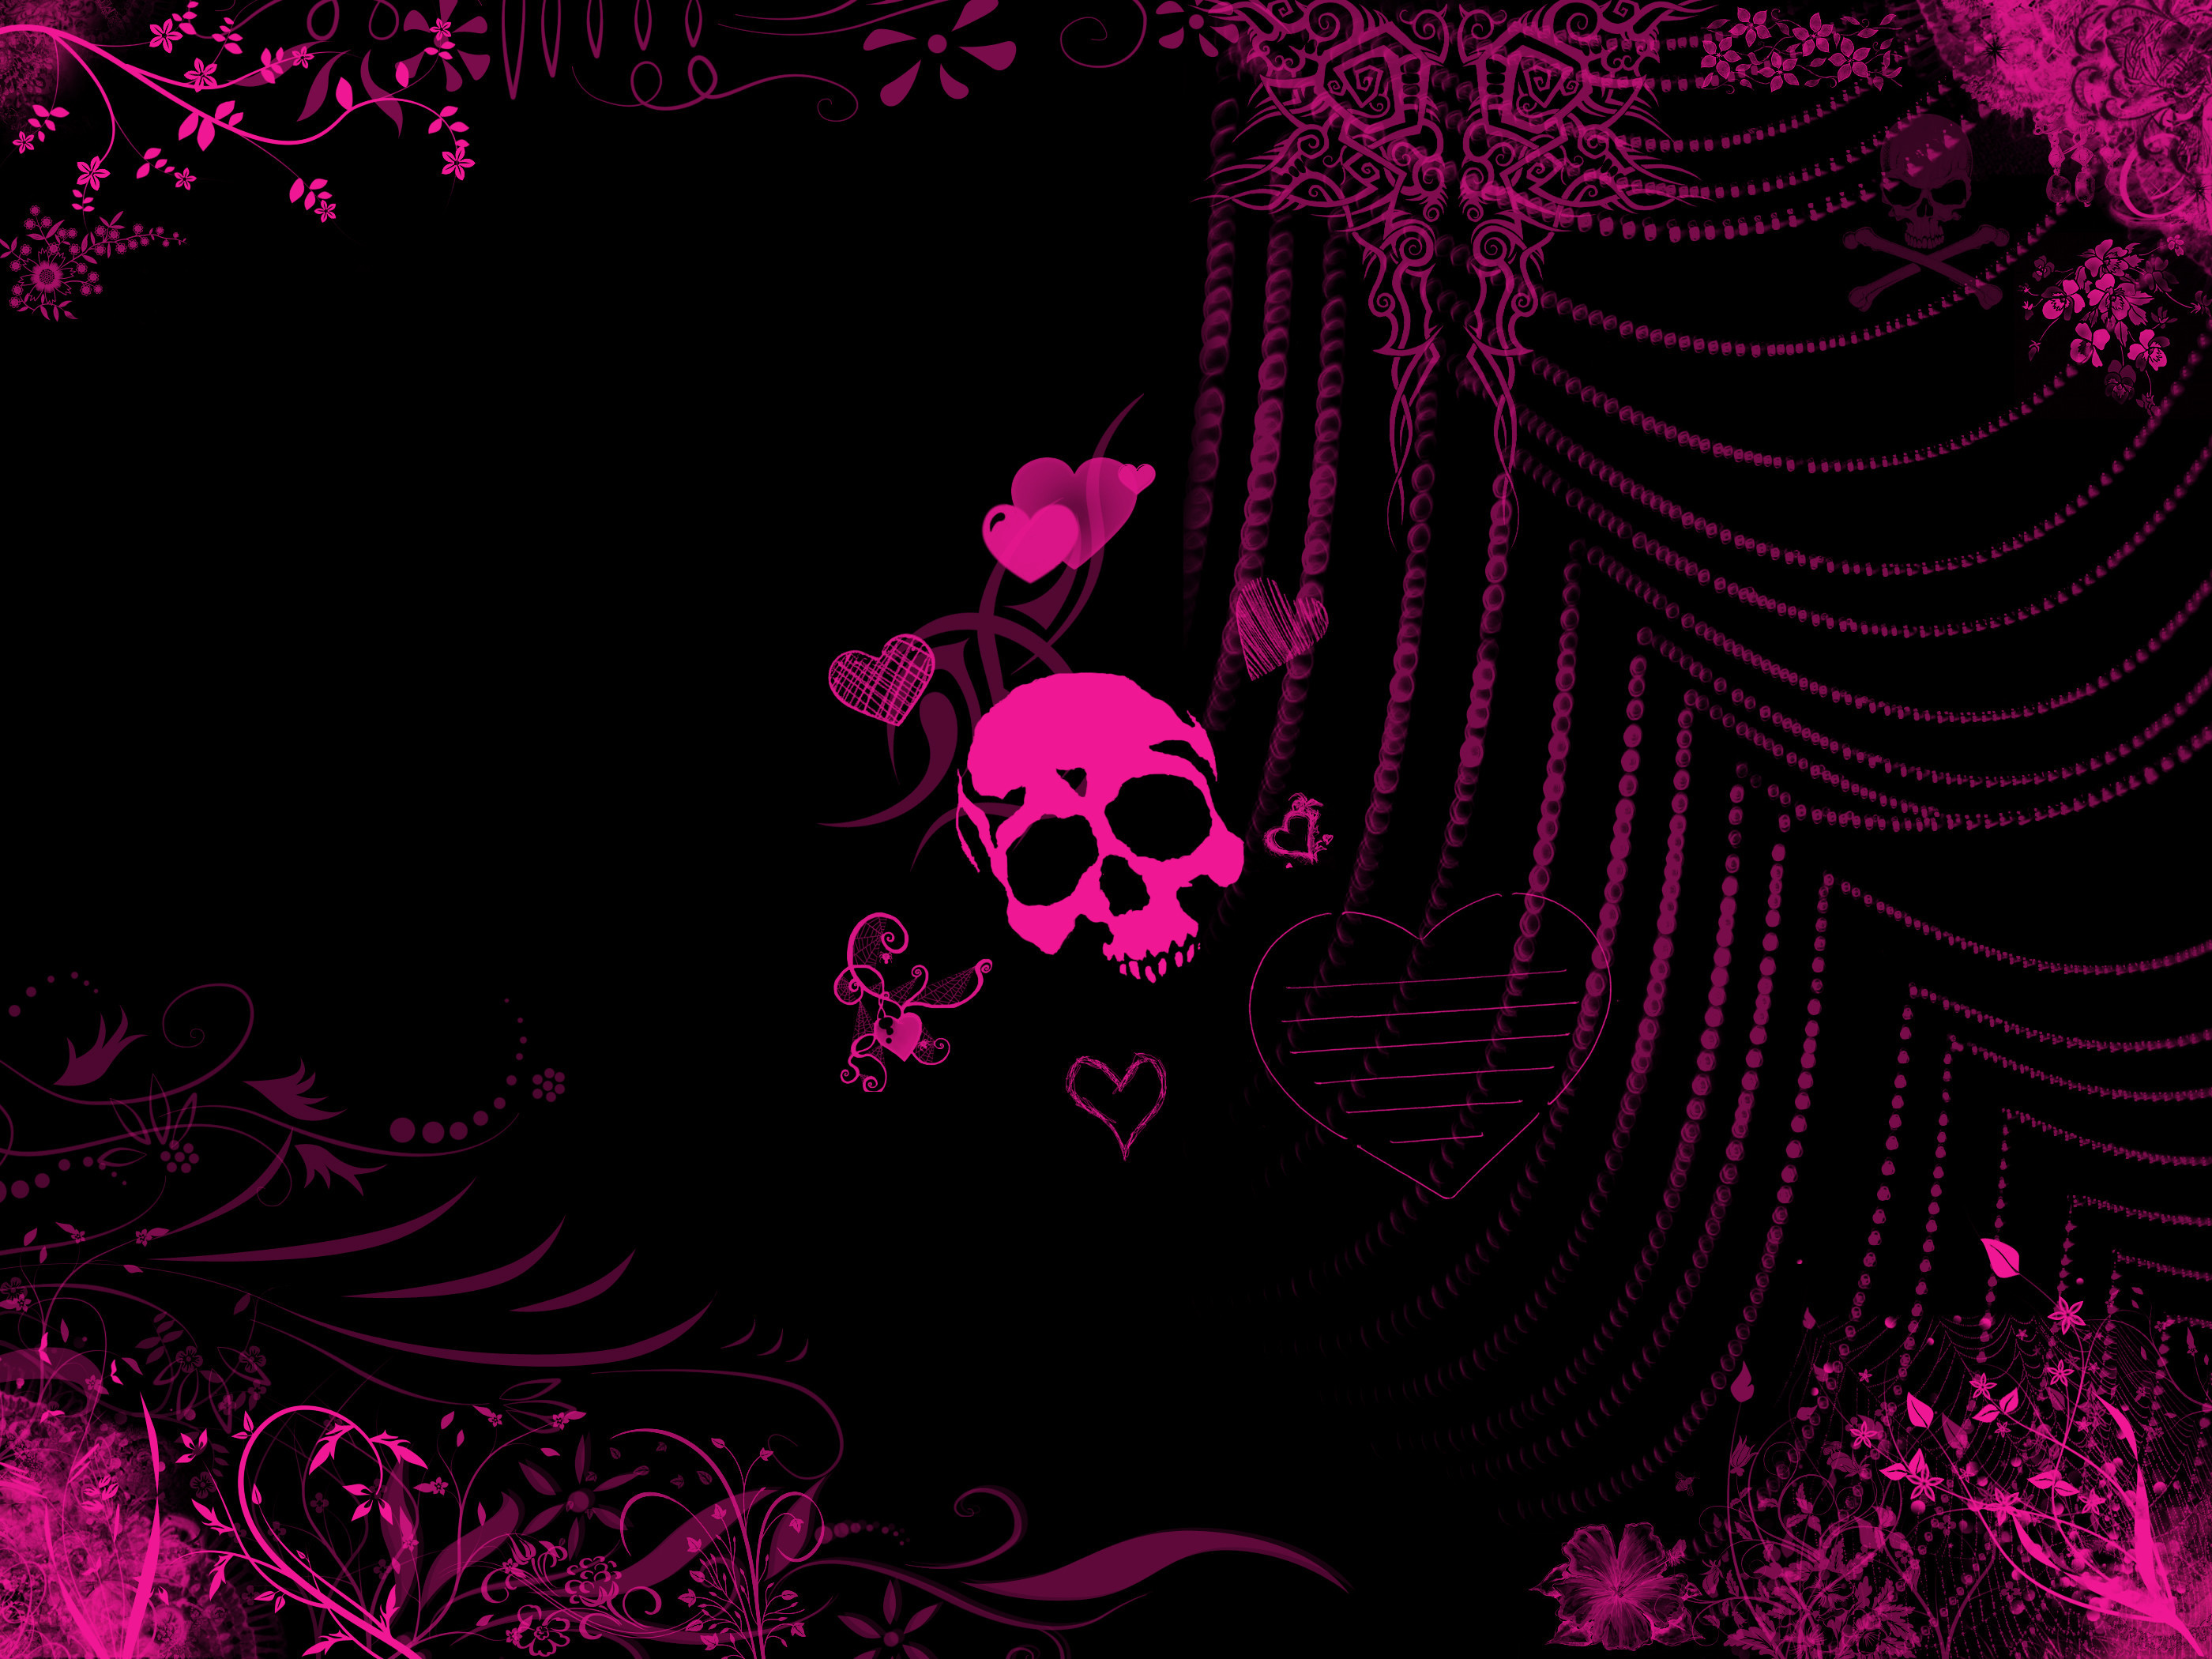 Cute Emo Backgrounds 183 ① Wallpapertag